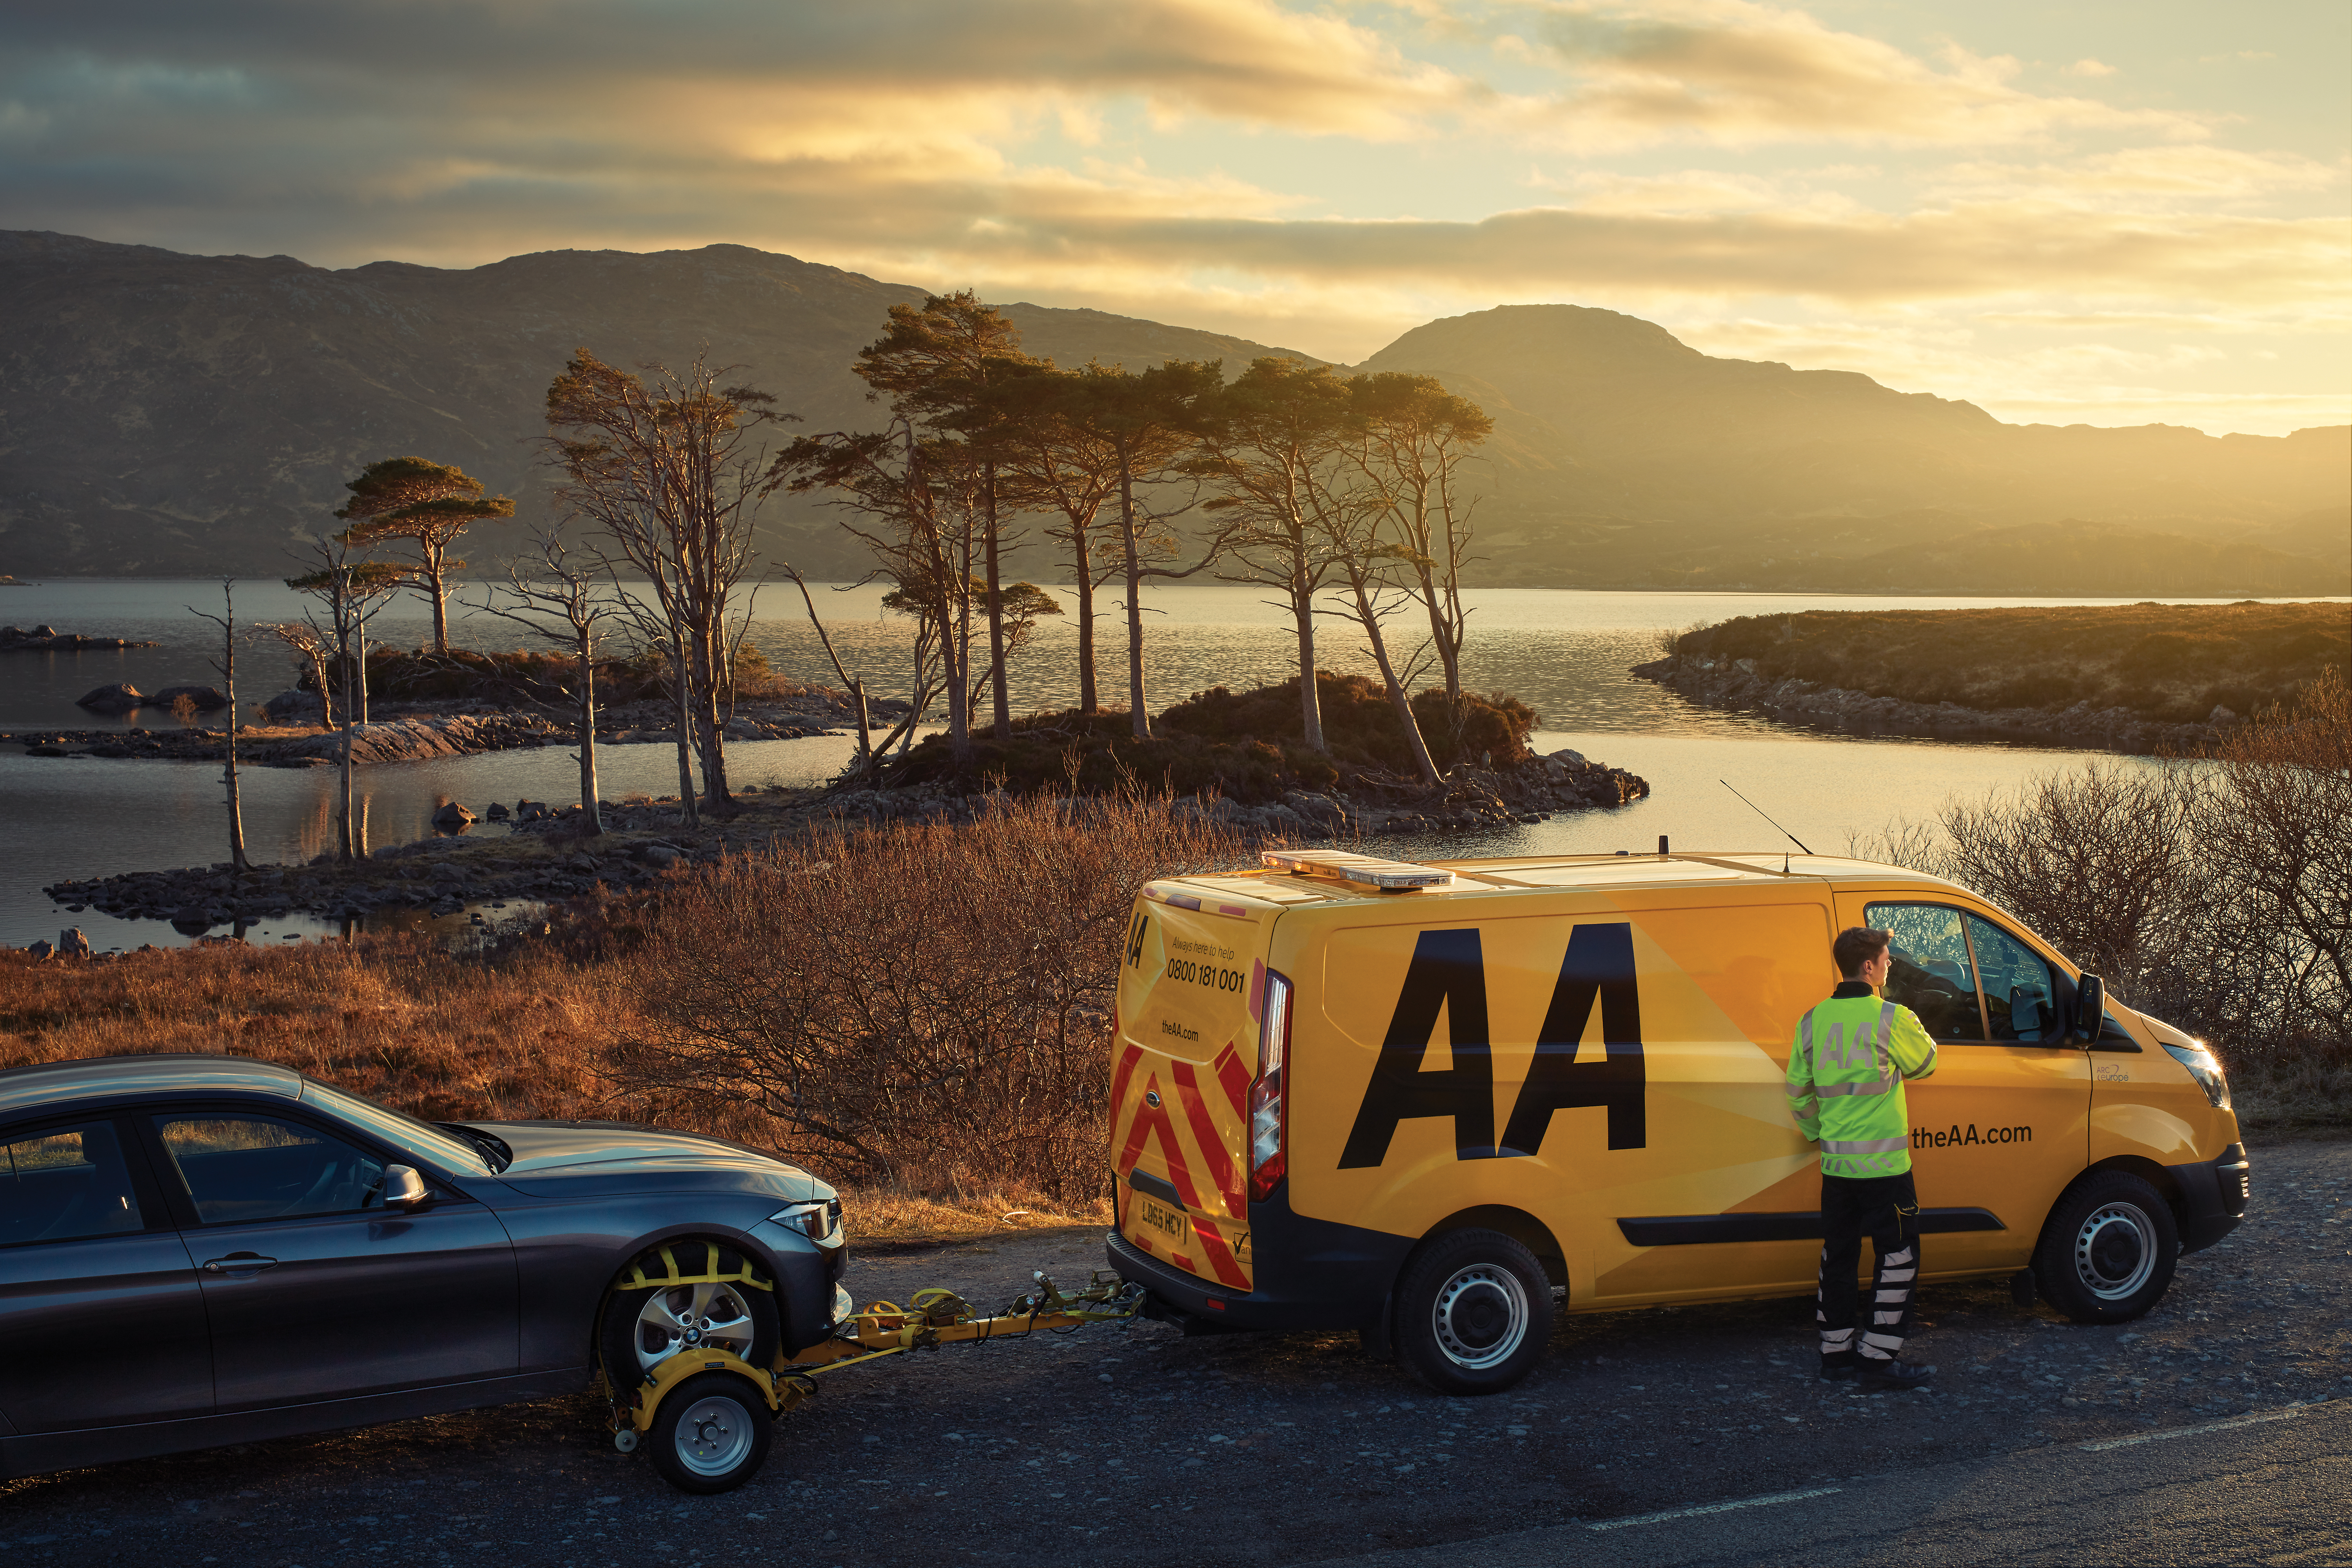 AA recovery van towing a car at side of rural road